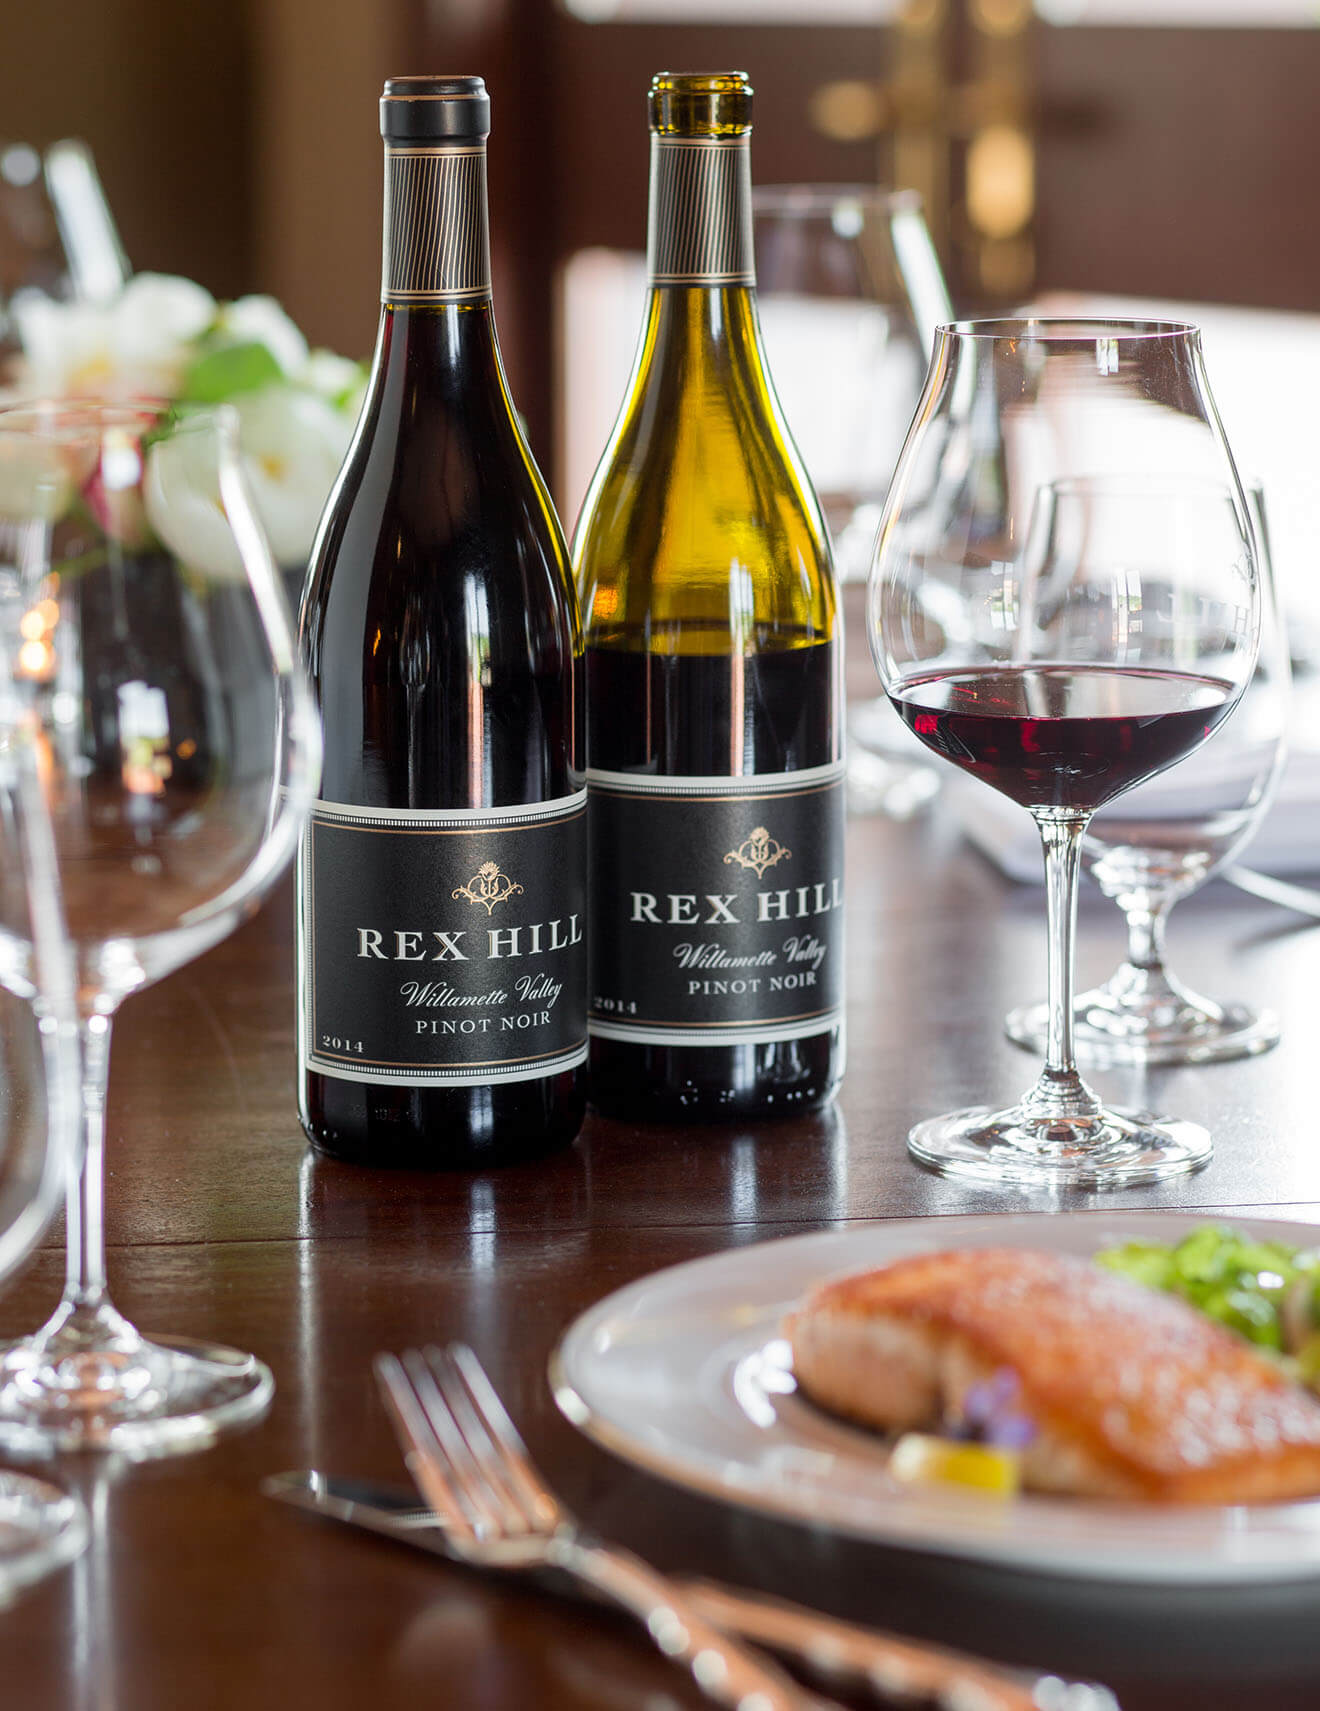 Rex Hill Pinot Noir Paired with Salmon